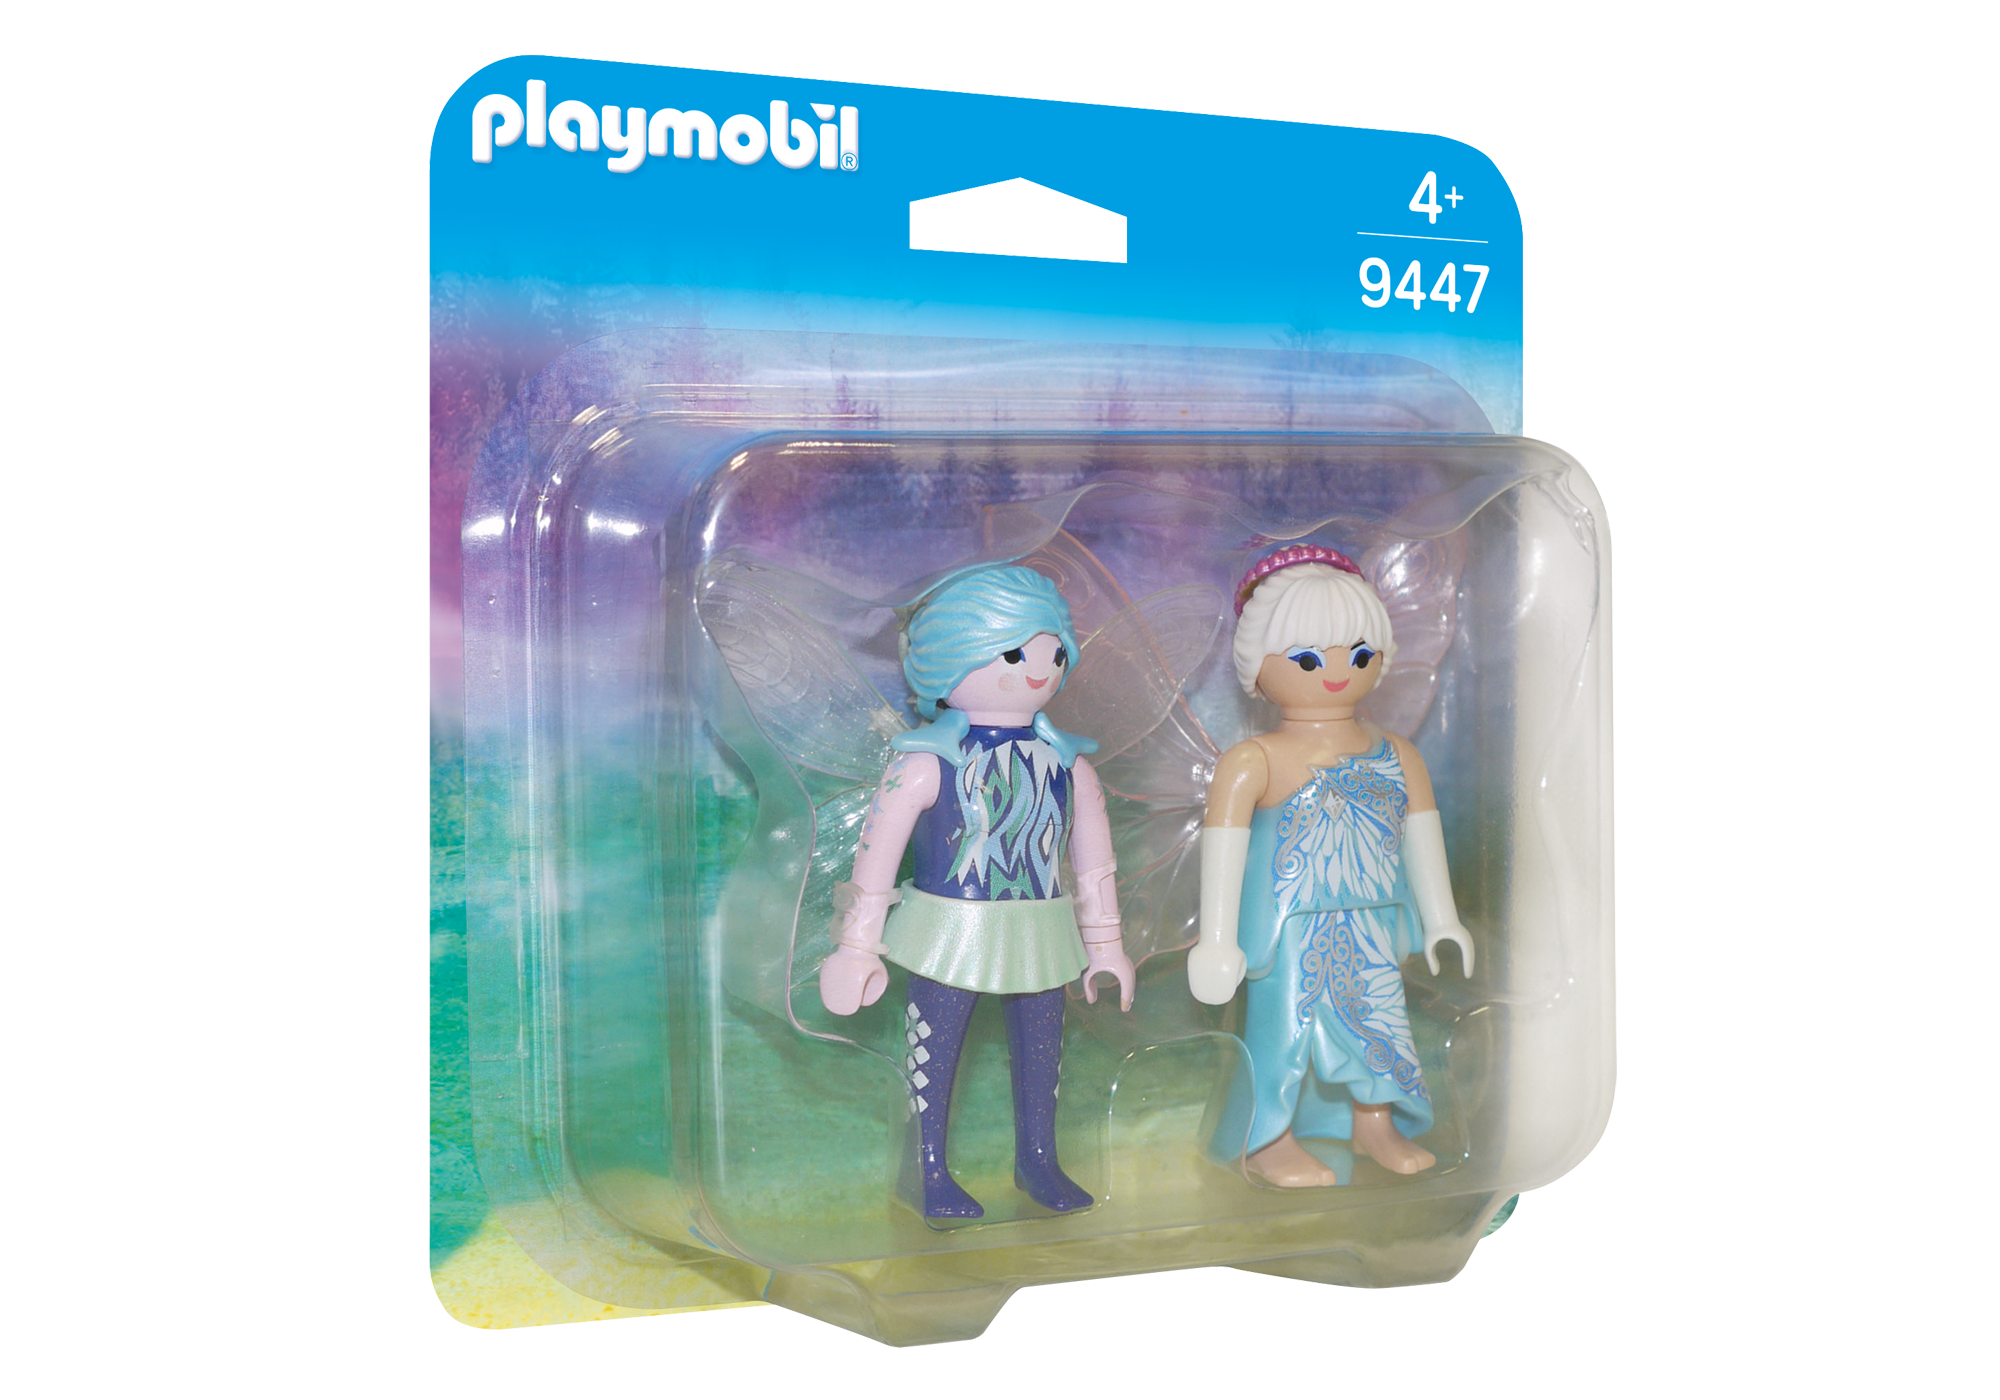 http://media.playmobil.com/i/playmobil/9447_product_box_front/Duo Pack Winterfeen